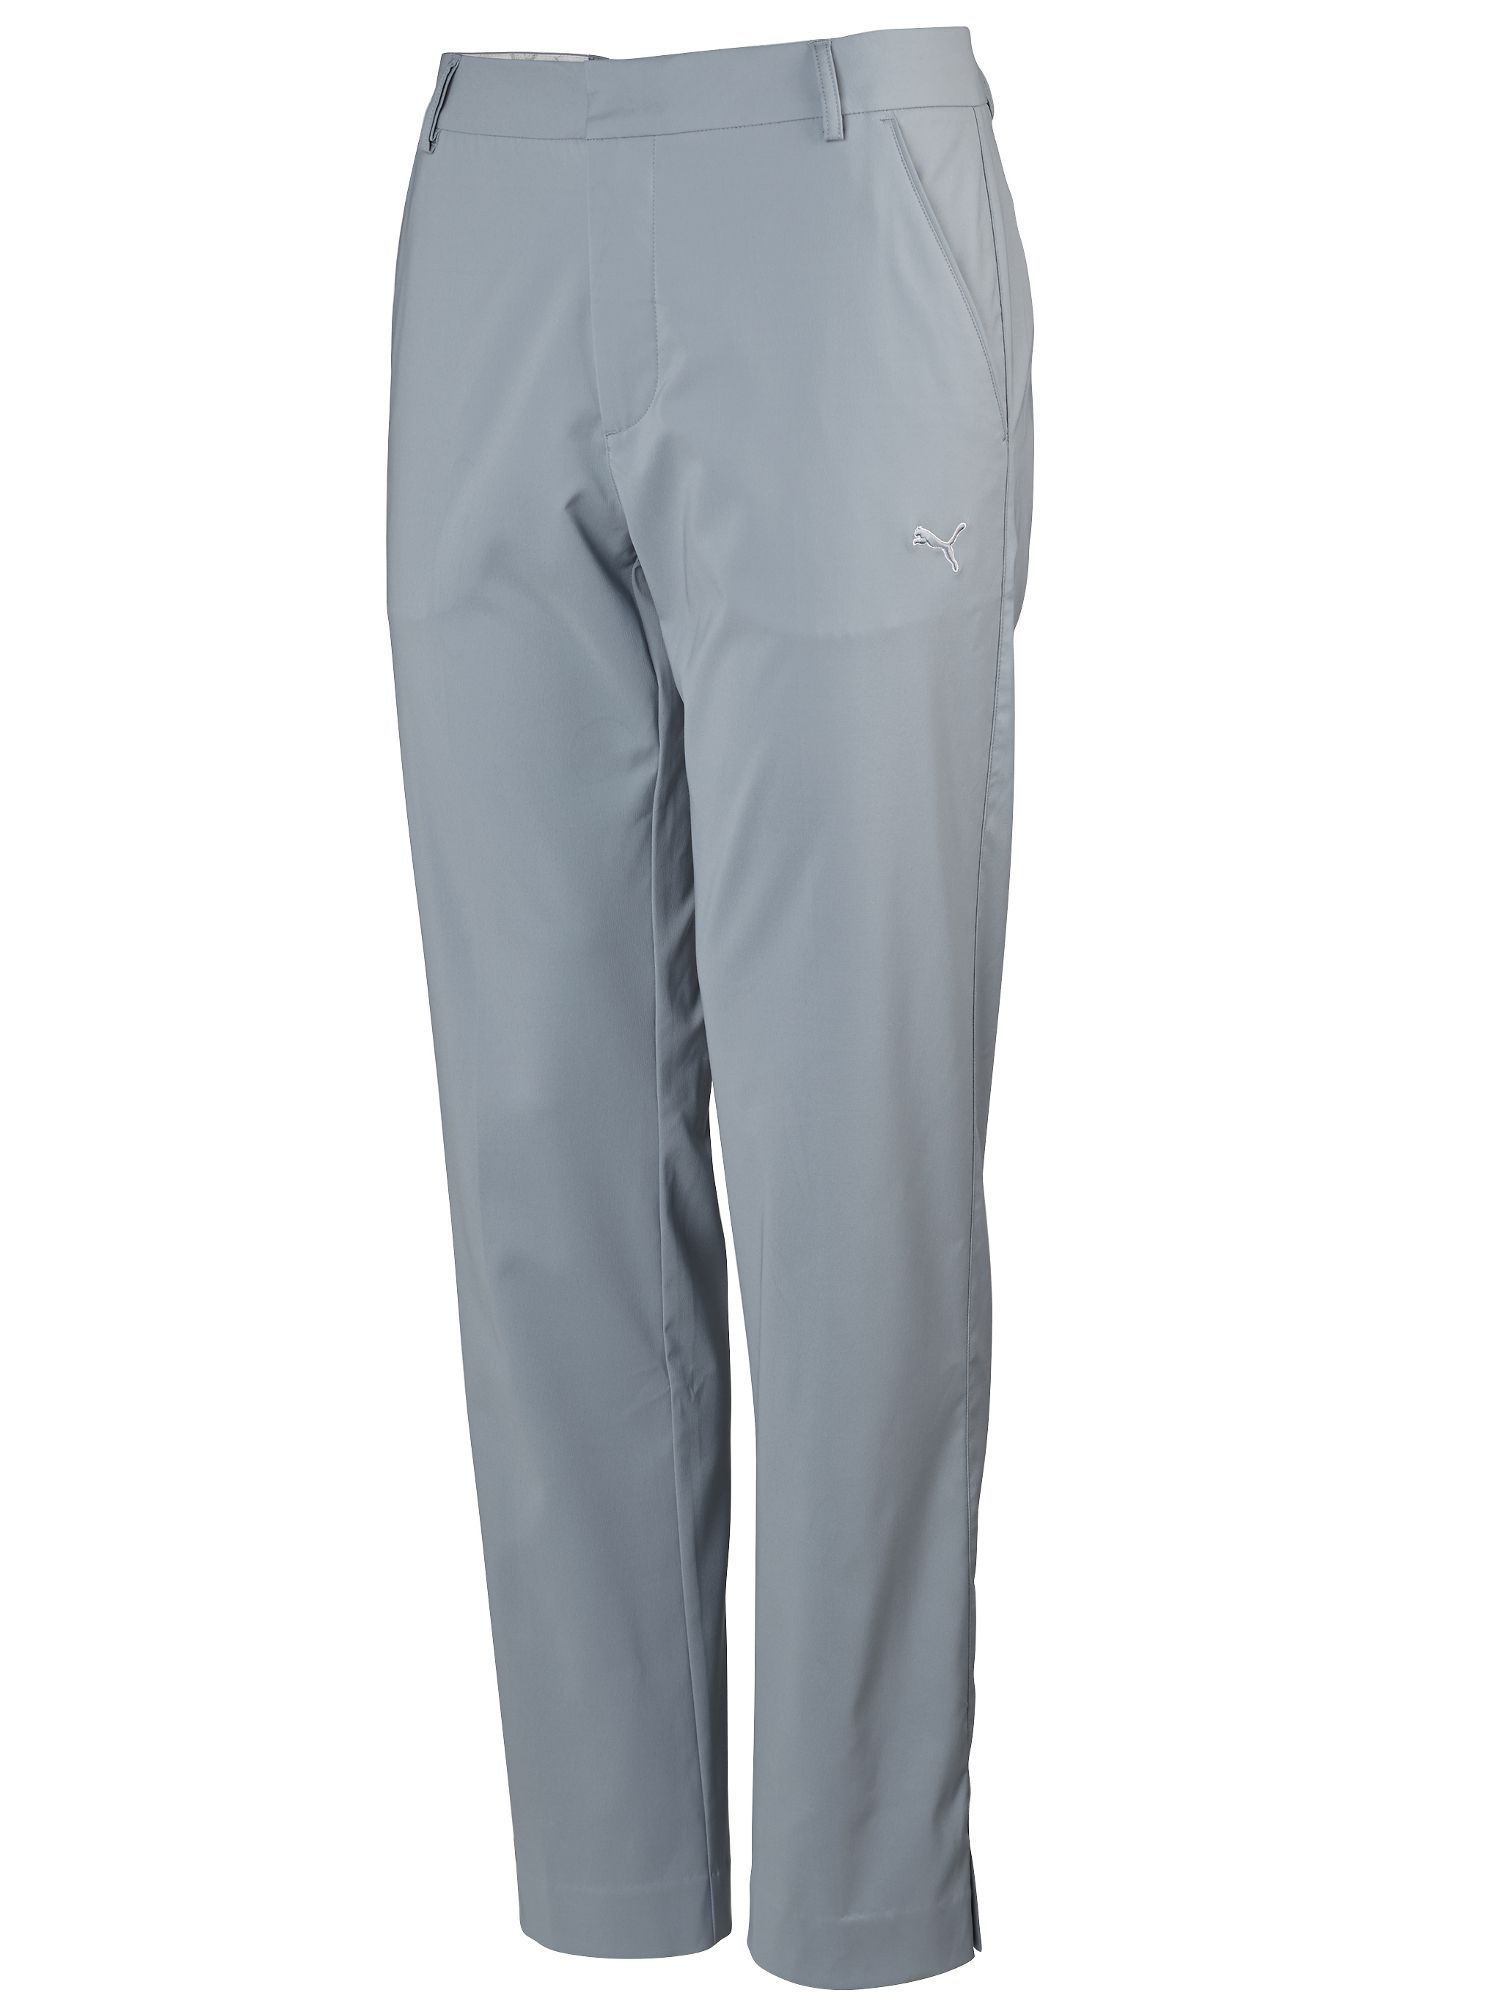 Casual tech style trousers